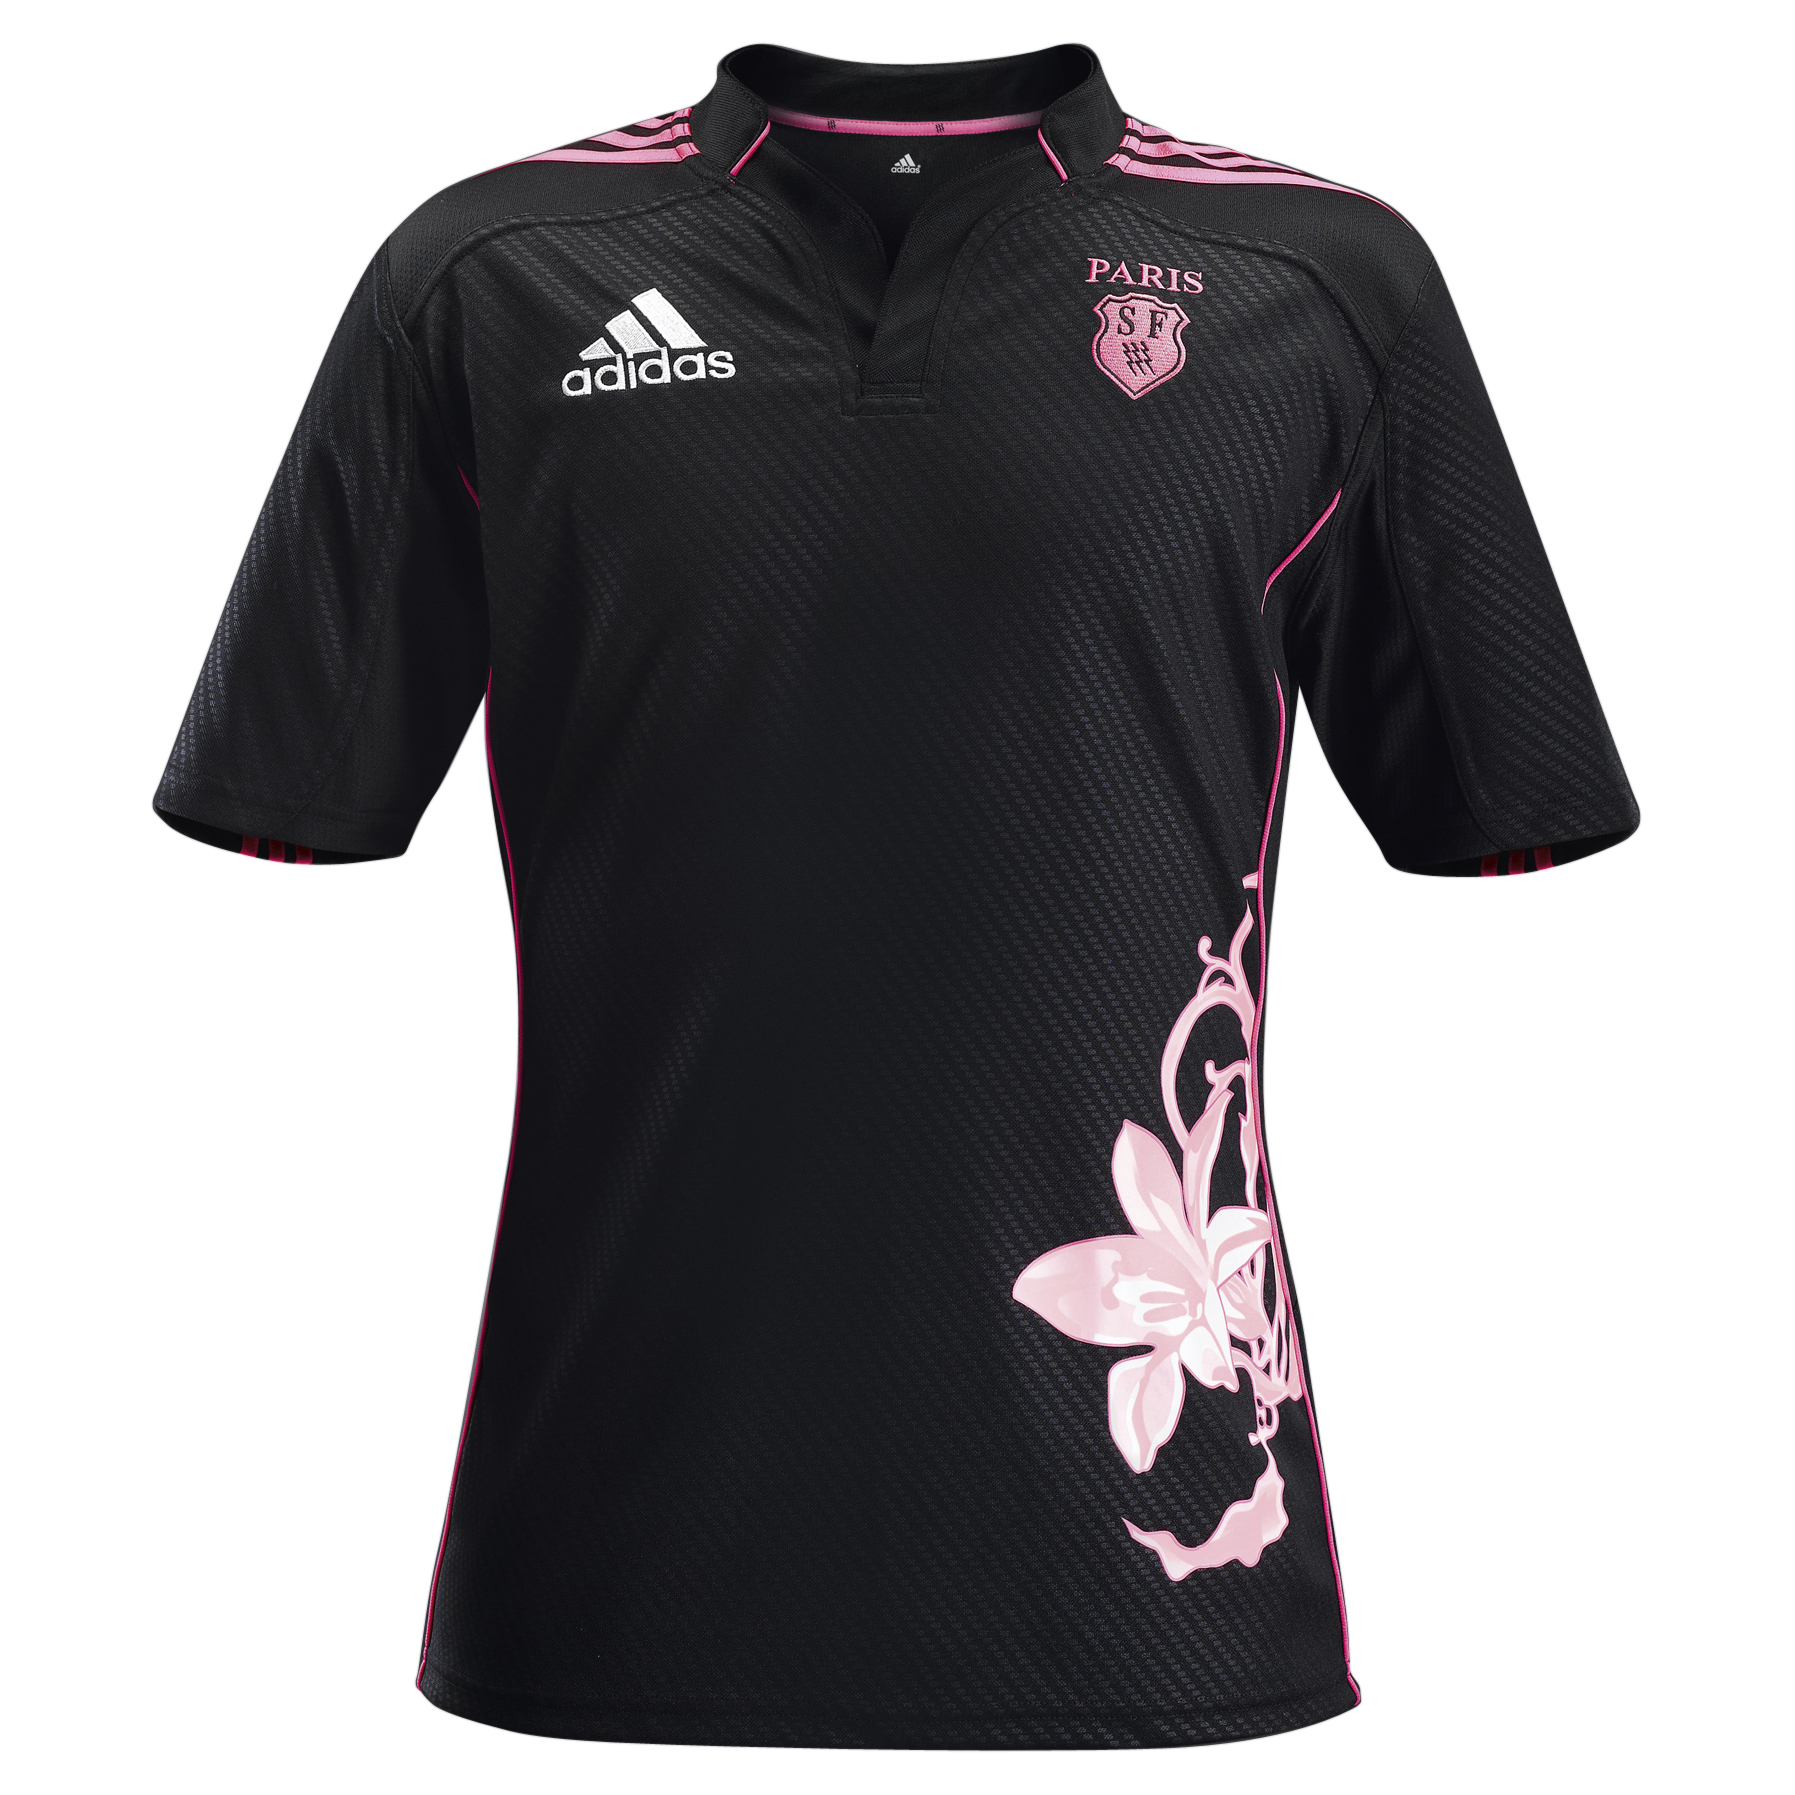 Stade Francais Away Shirt 2012/13 - Black/Ultra Pop